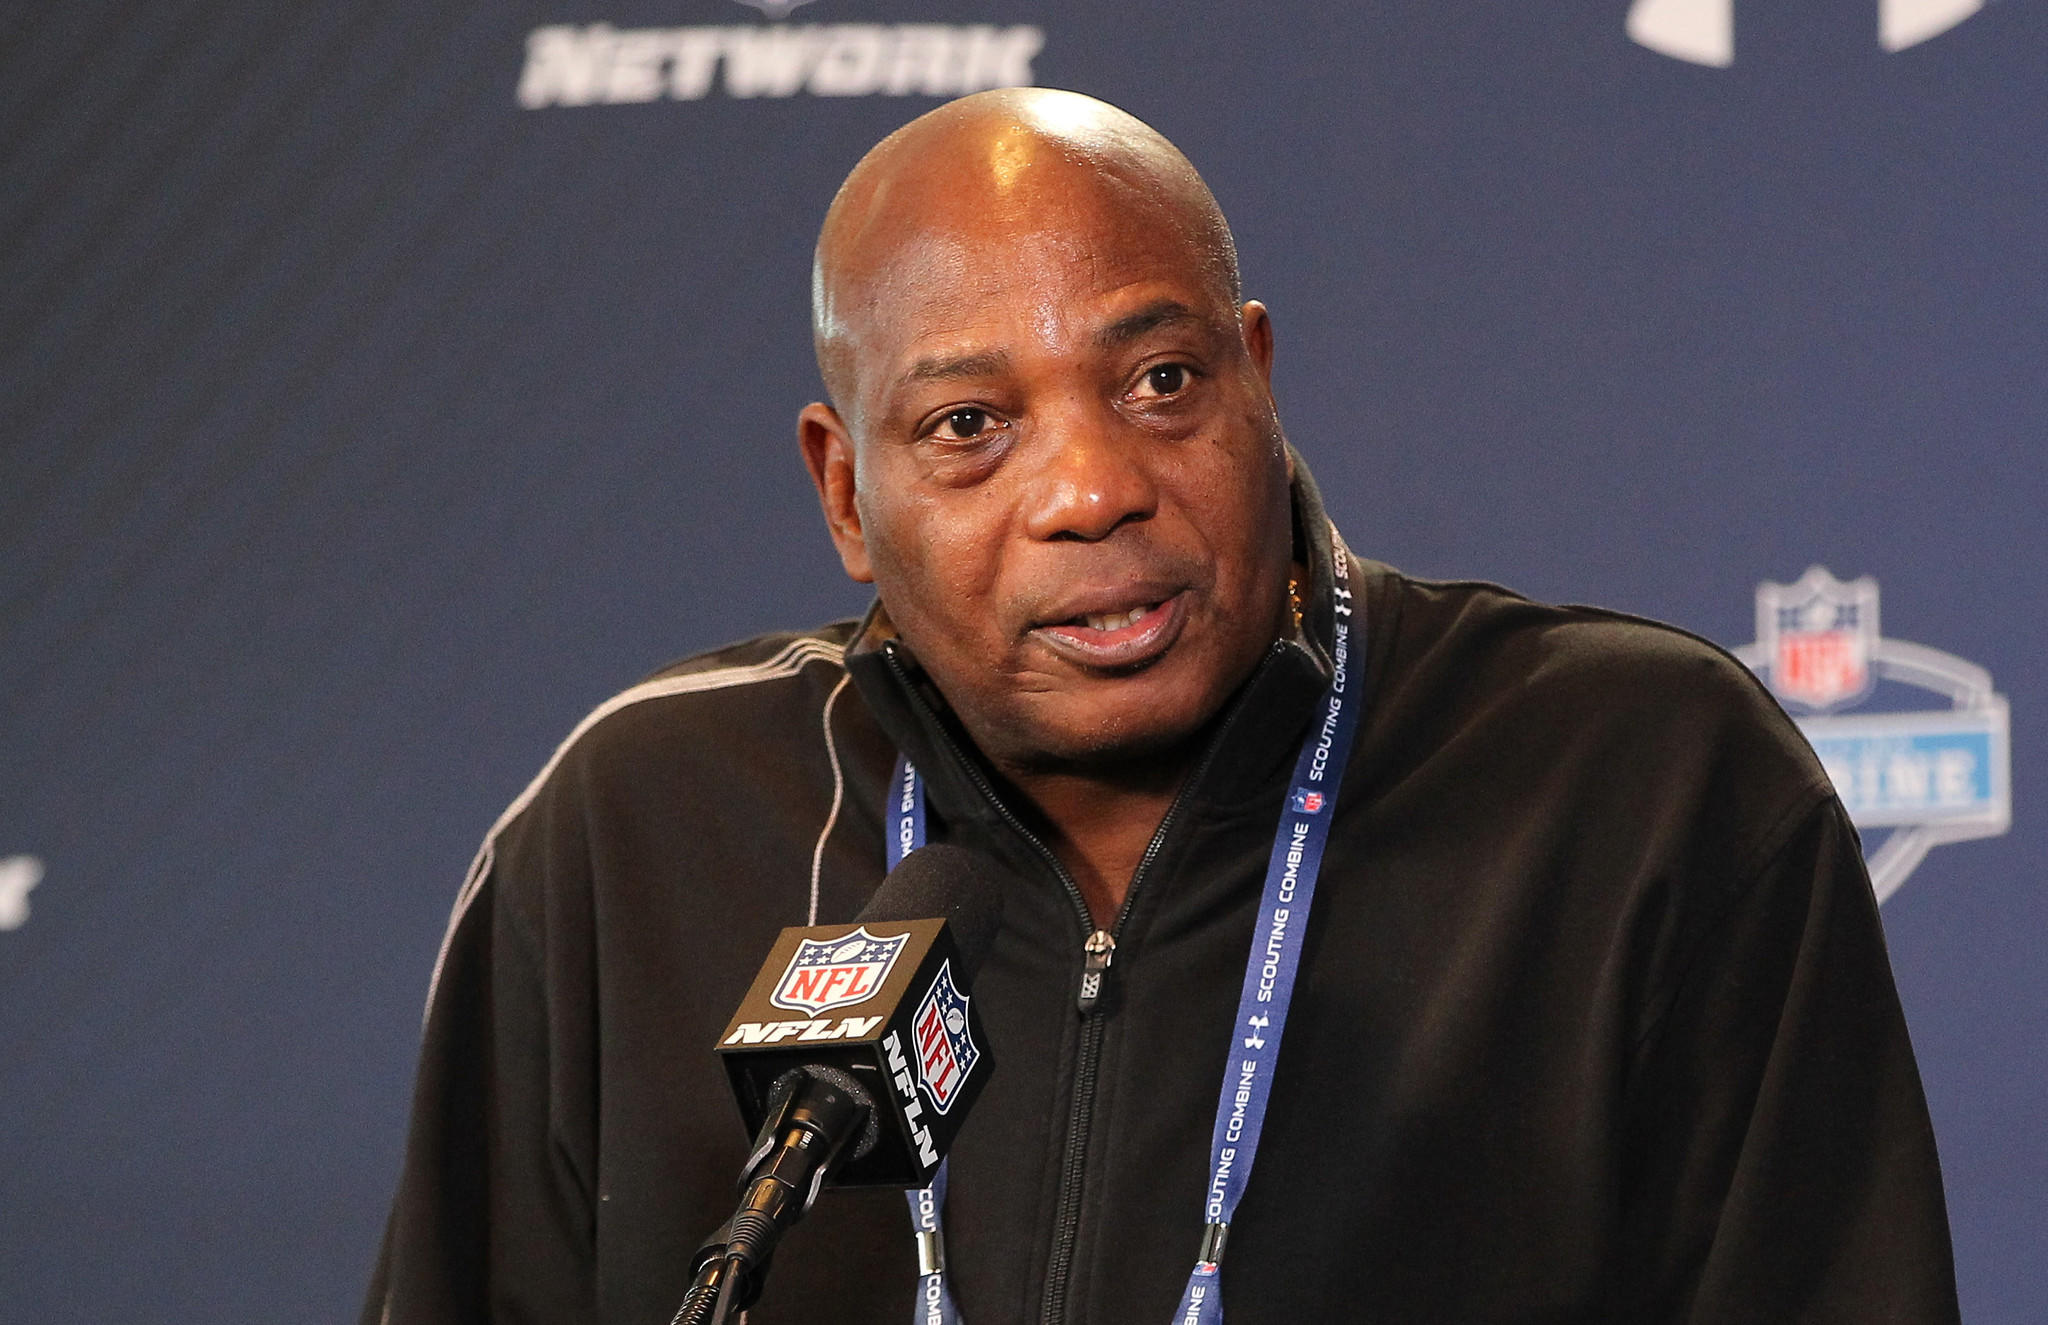 Ravens general manager Ozzie Newsome discusses the team during an appearance at the NFL scouting combine in Indianapolis.